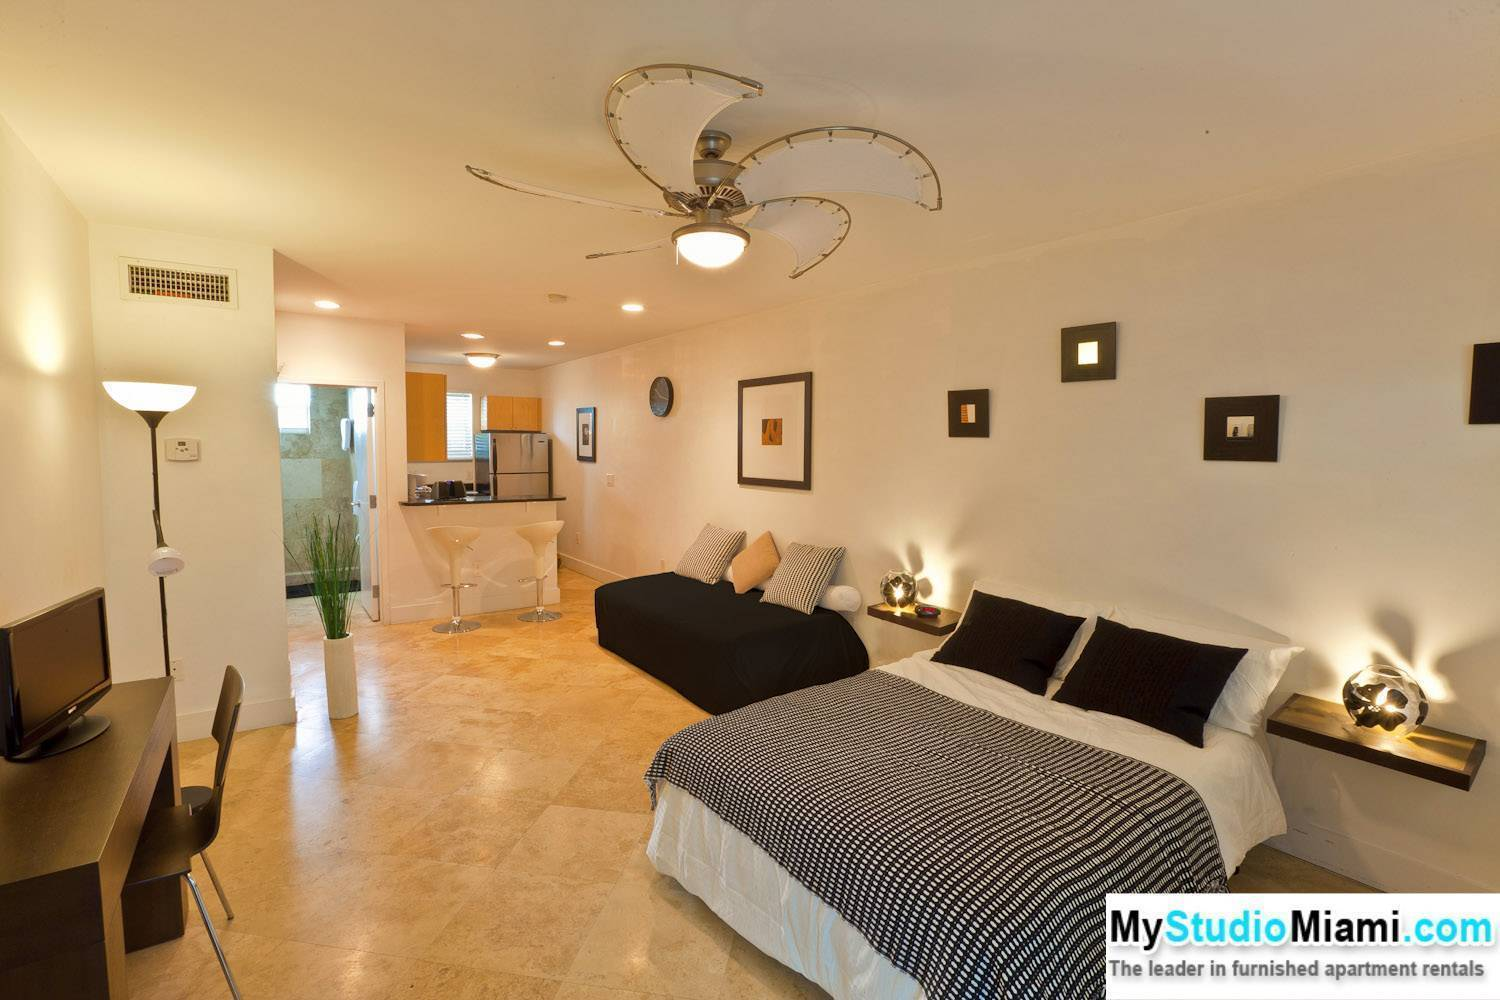 Apartment For Rent Miami Florida United States Fully Furnished Studio Vacation Rental In